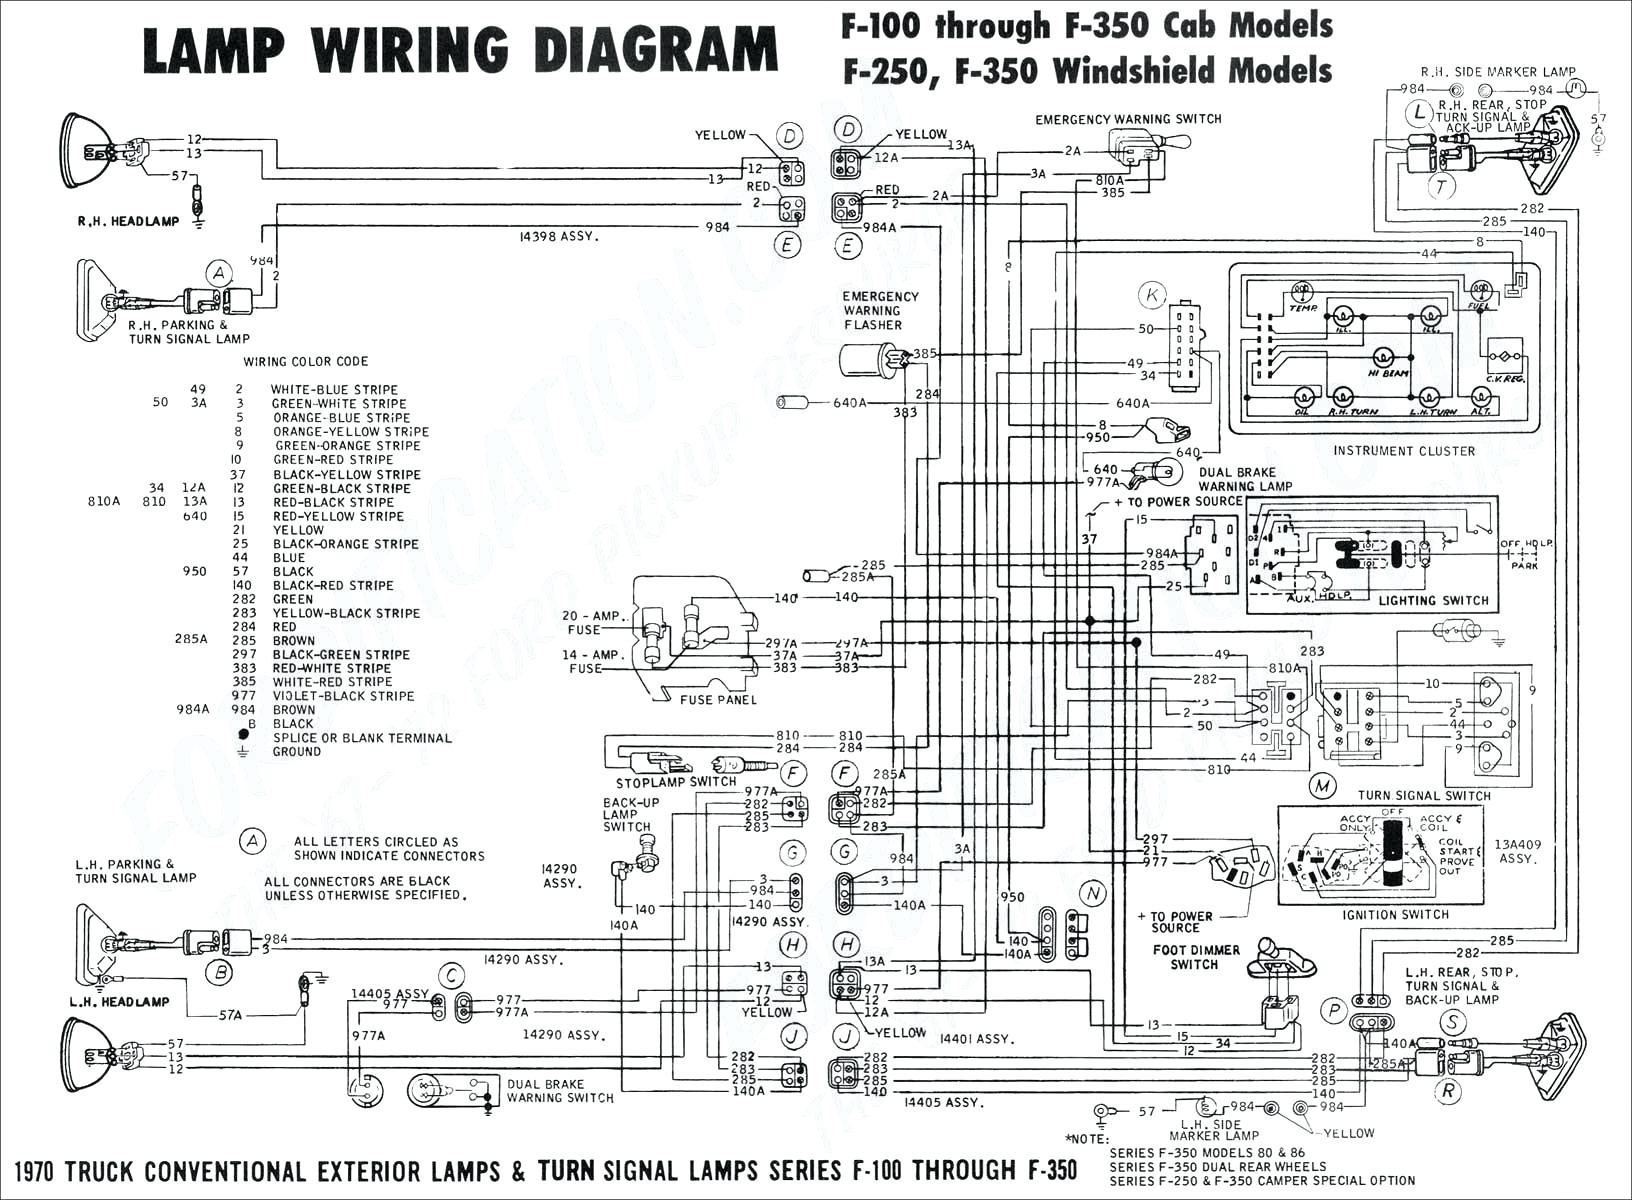 2004 f150 tail light wiring diagram